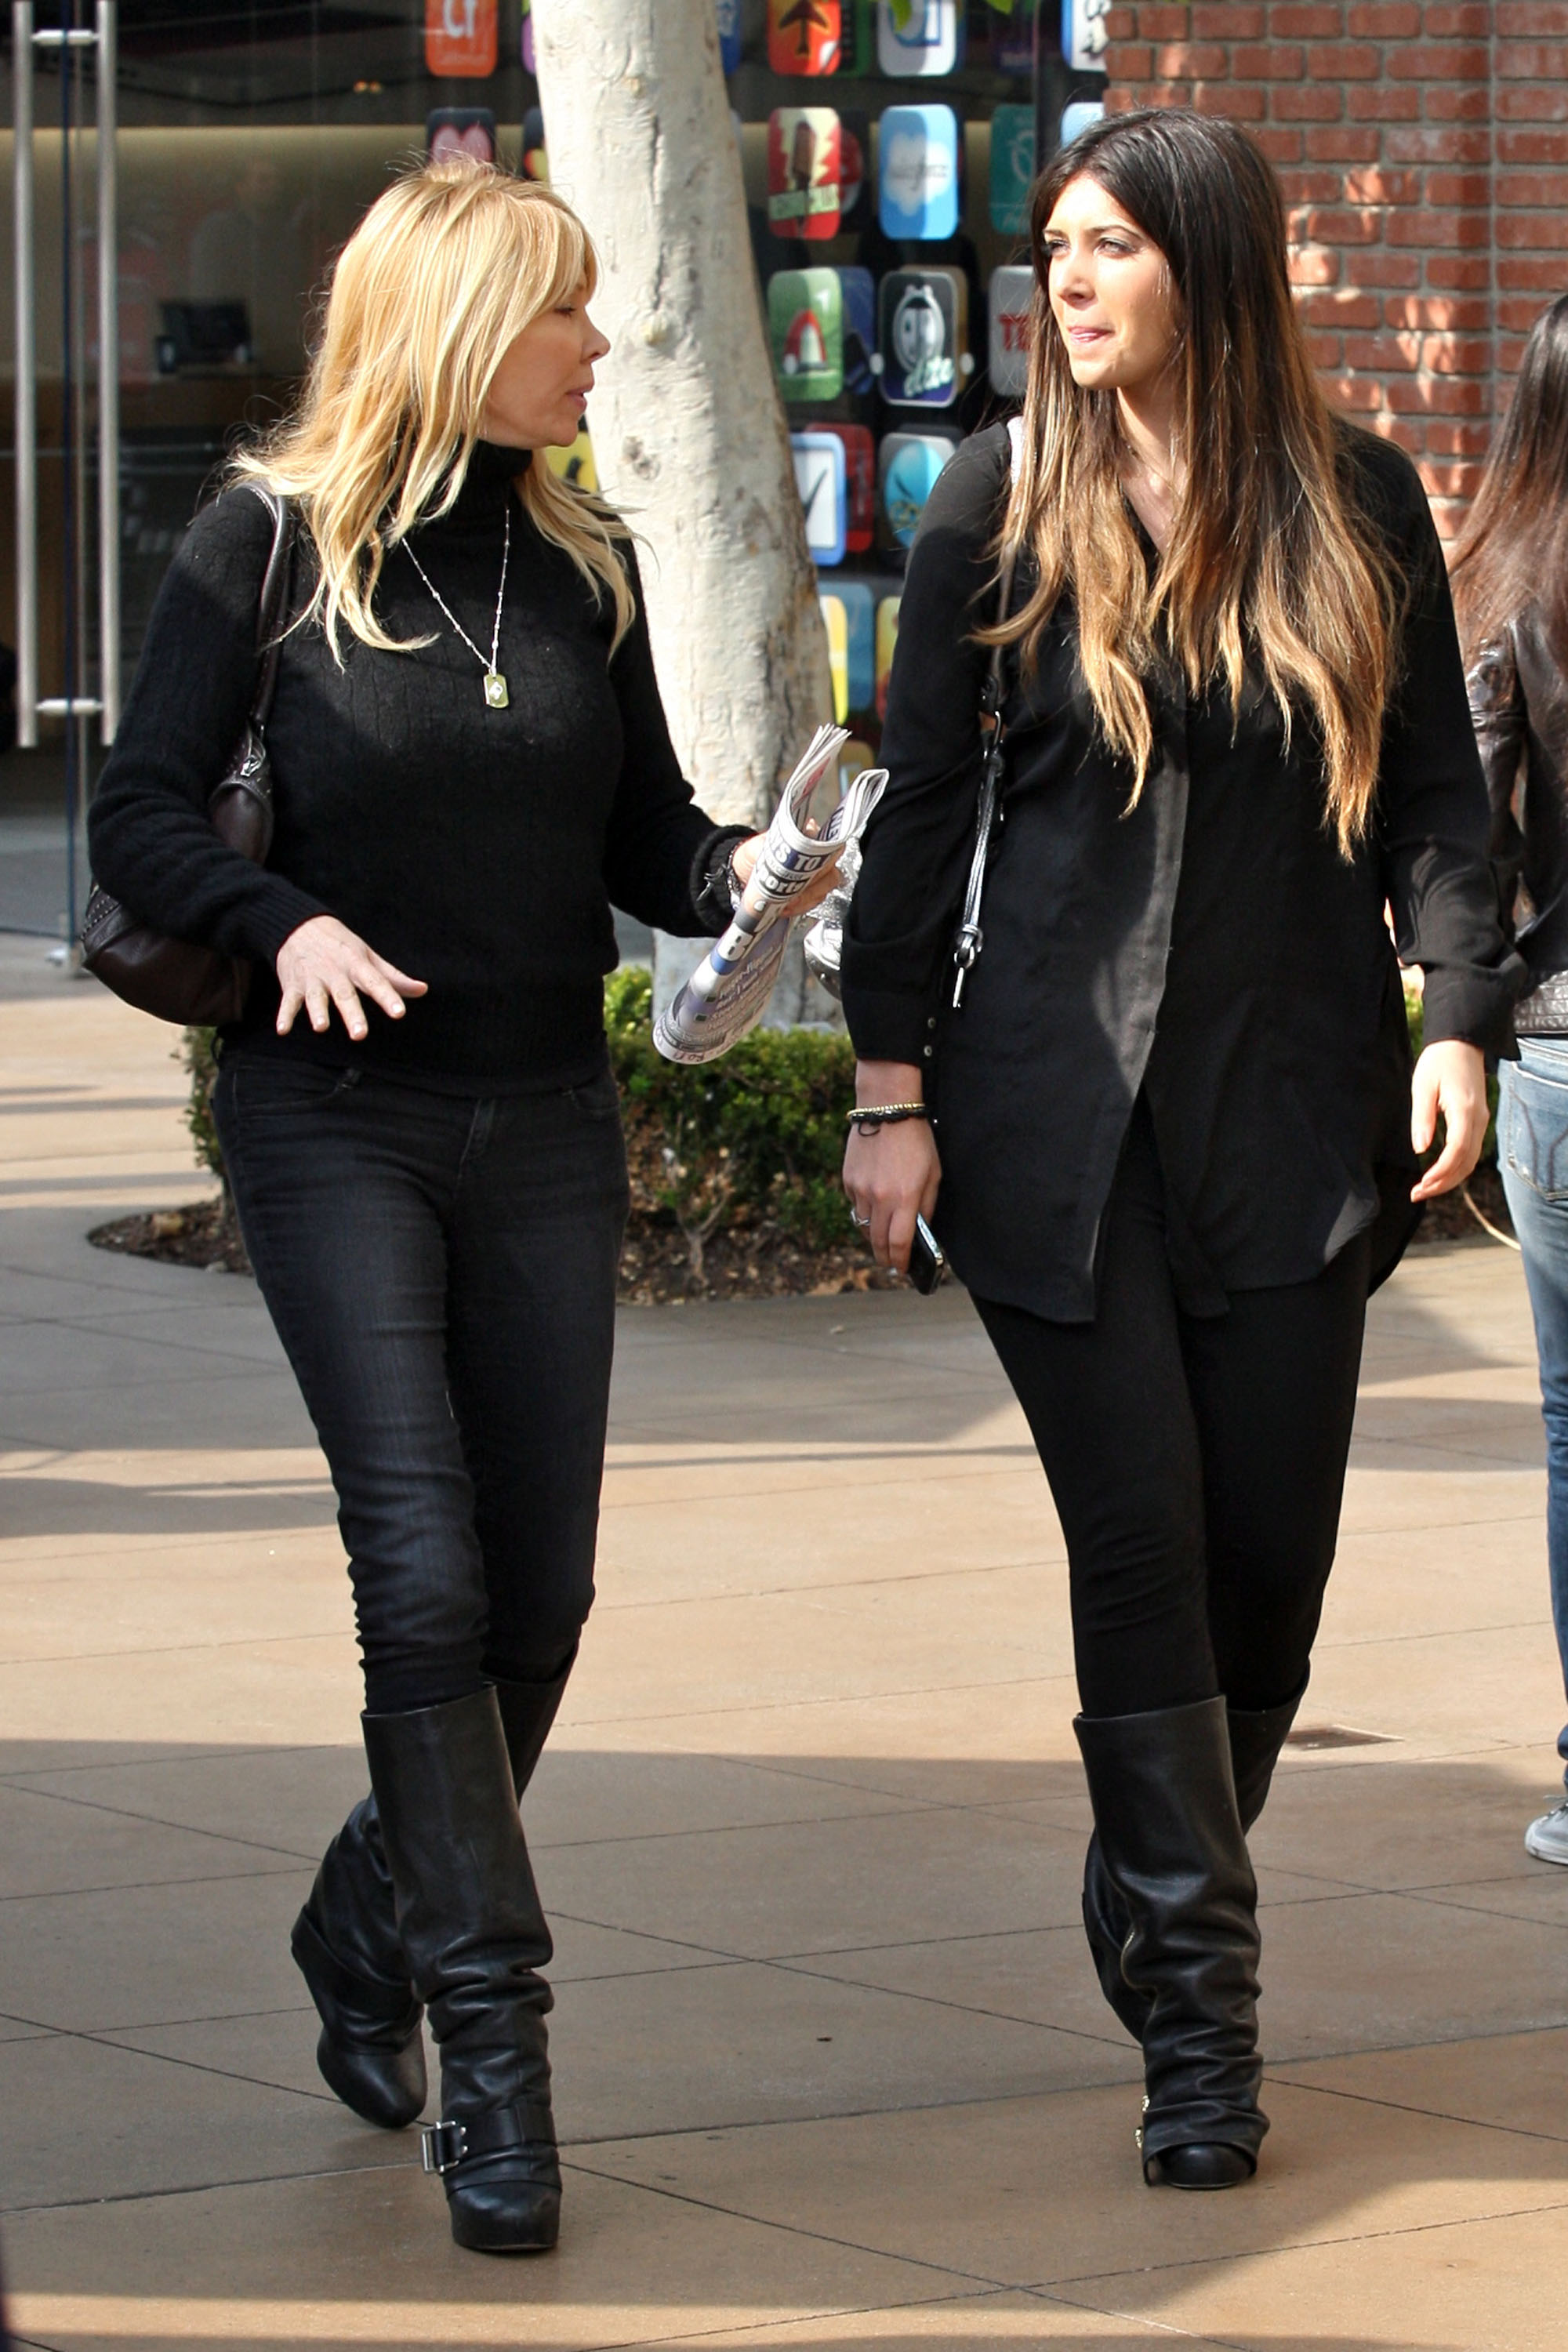 24828_celebrity-paradise.com-The_Elder-Brittny_Gastineau_2010-02-01_-_out_shopping_in_Hollywood_430_122_431lo.jpg